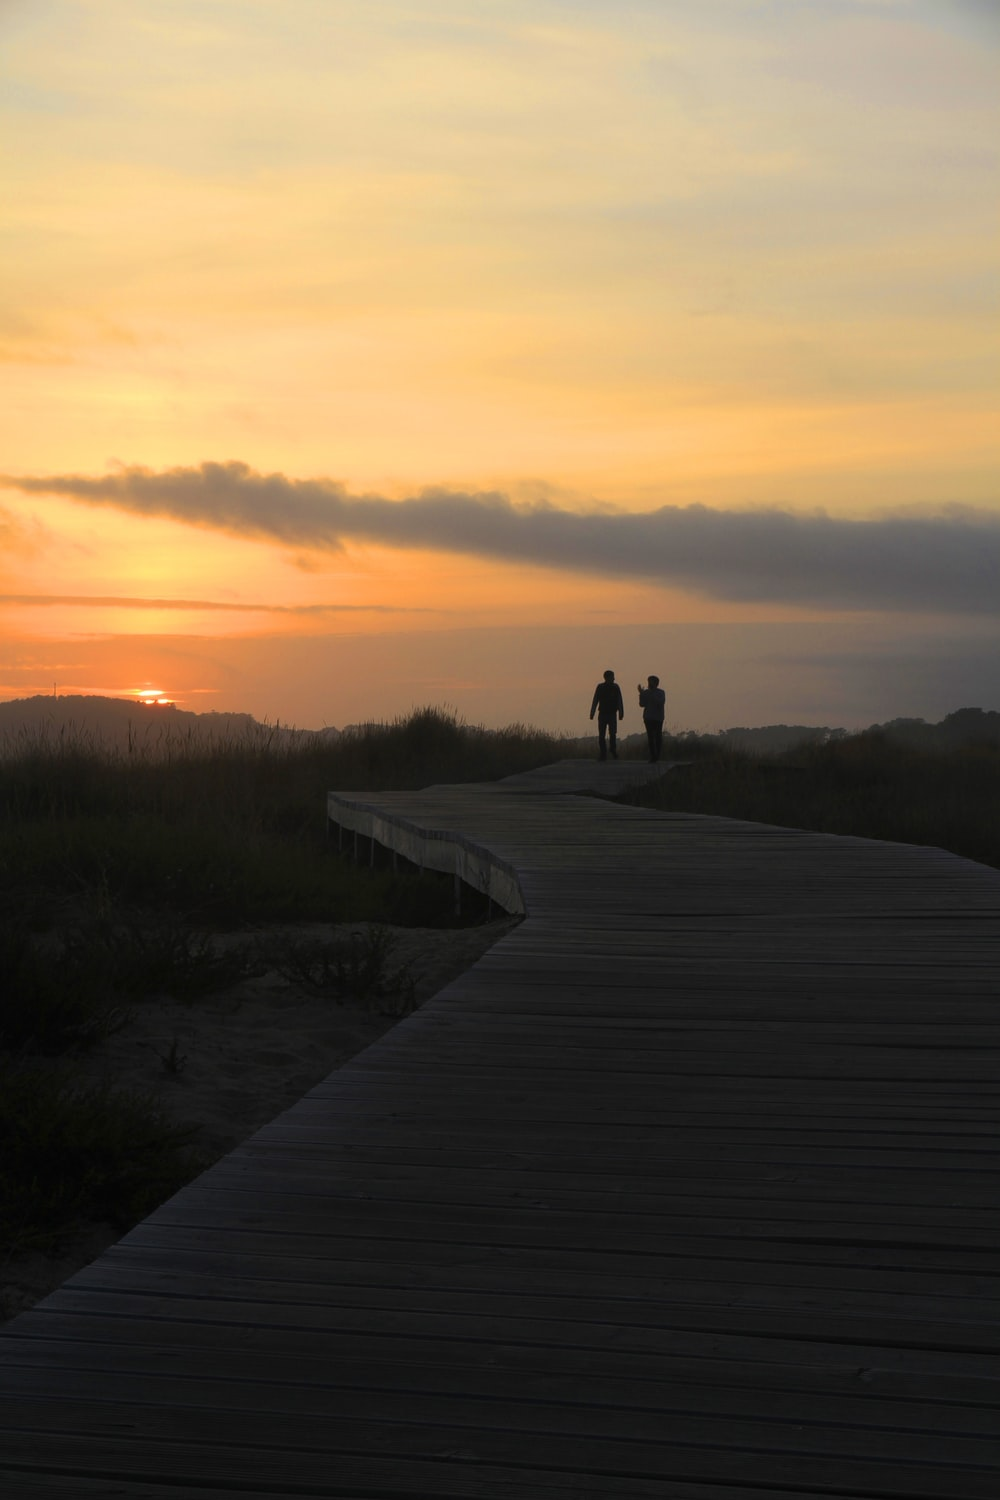 silhouette of 2 person walking on pathway during sunset